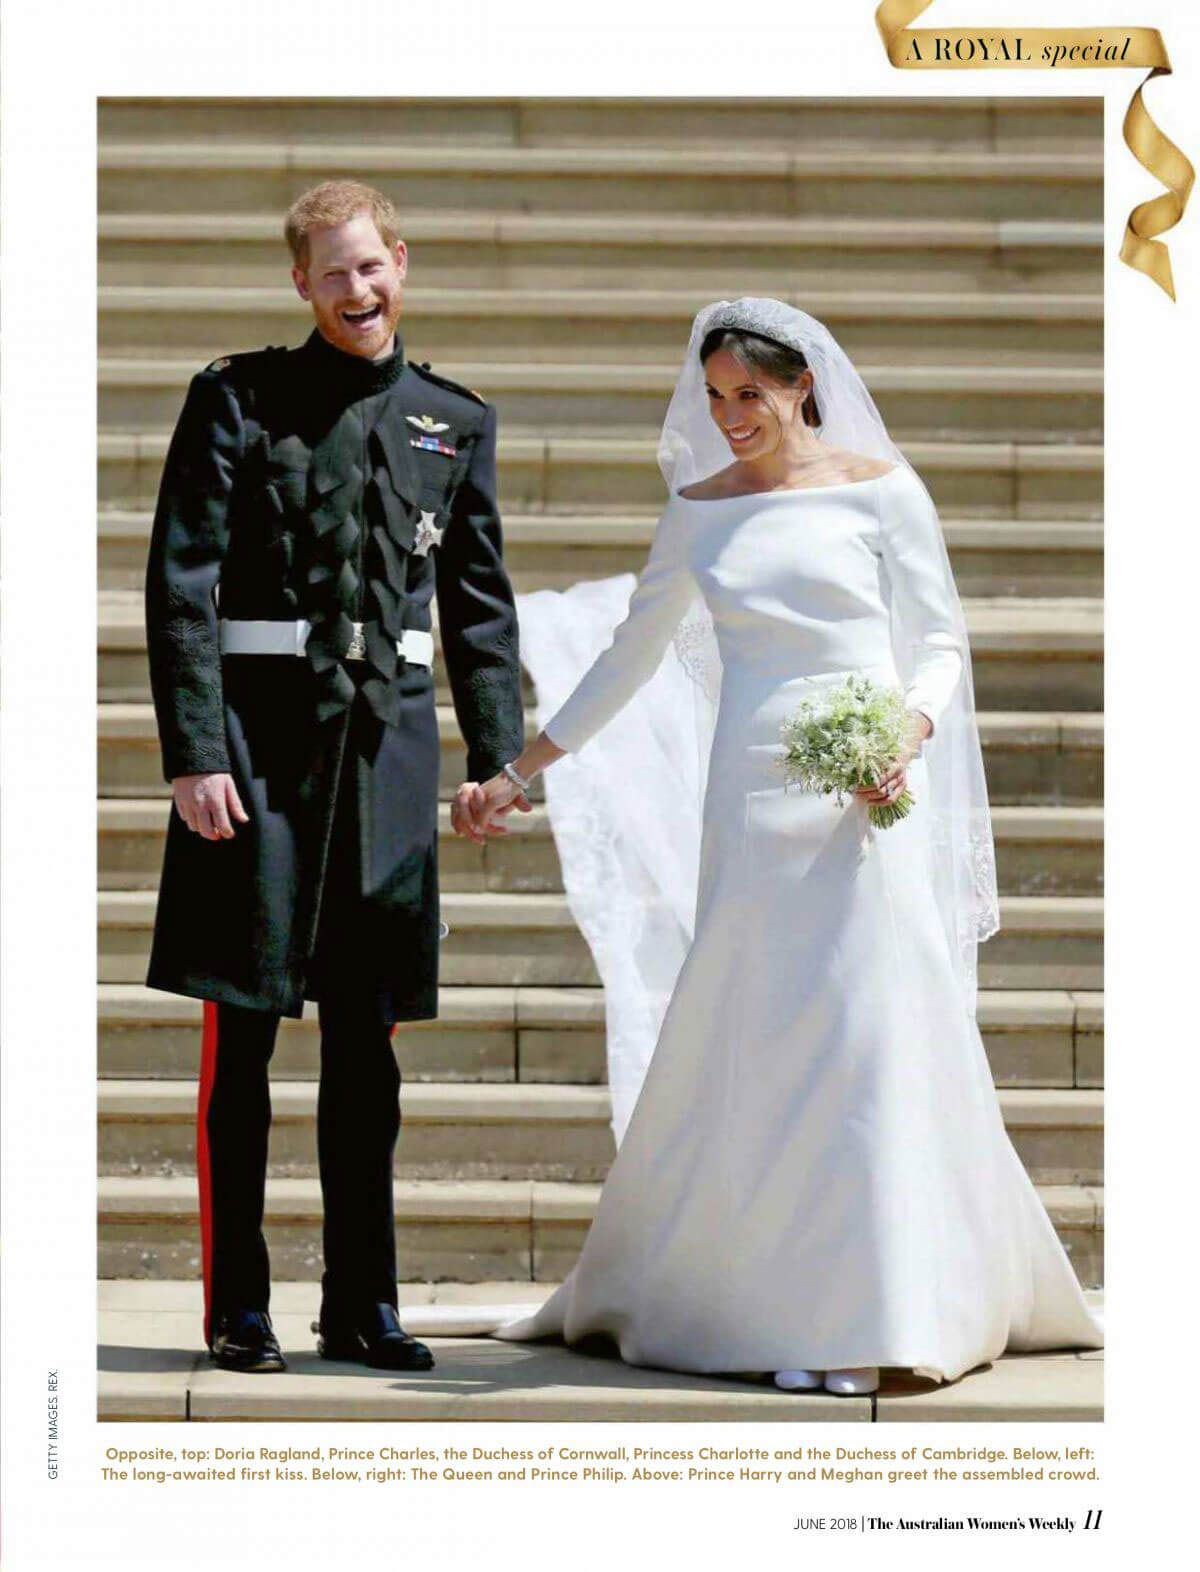 Meghan Markle and Prince Harry in Woman's Weekly, Australia June 2018 Issue 16